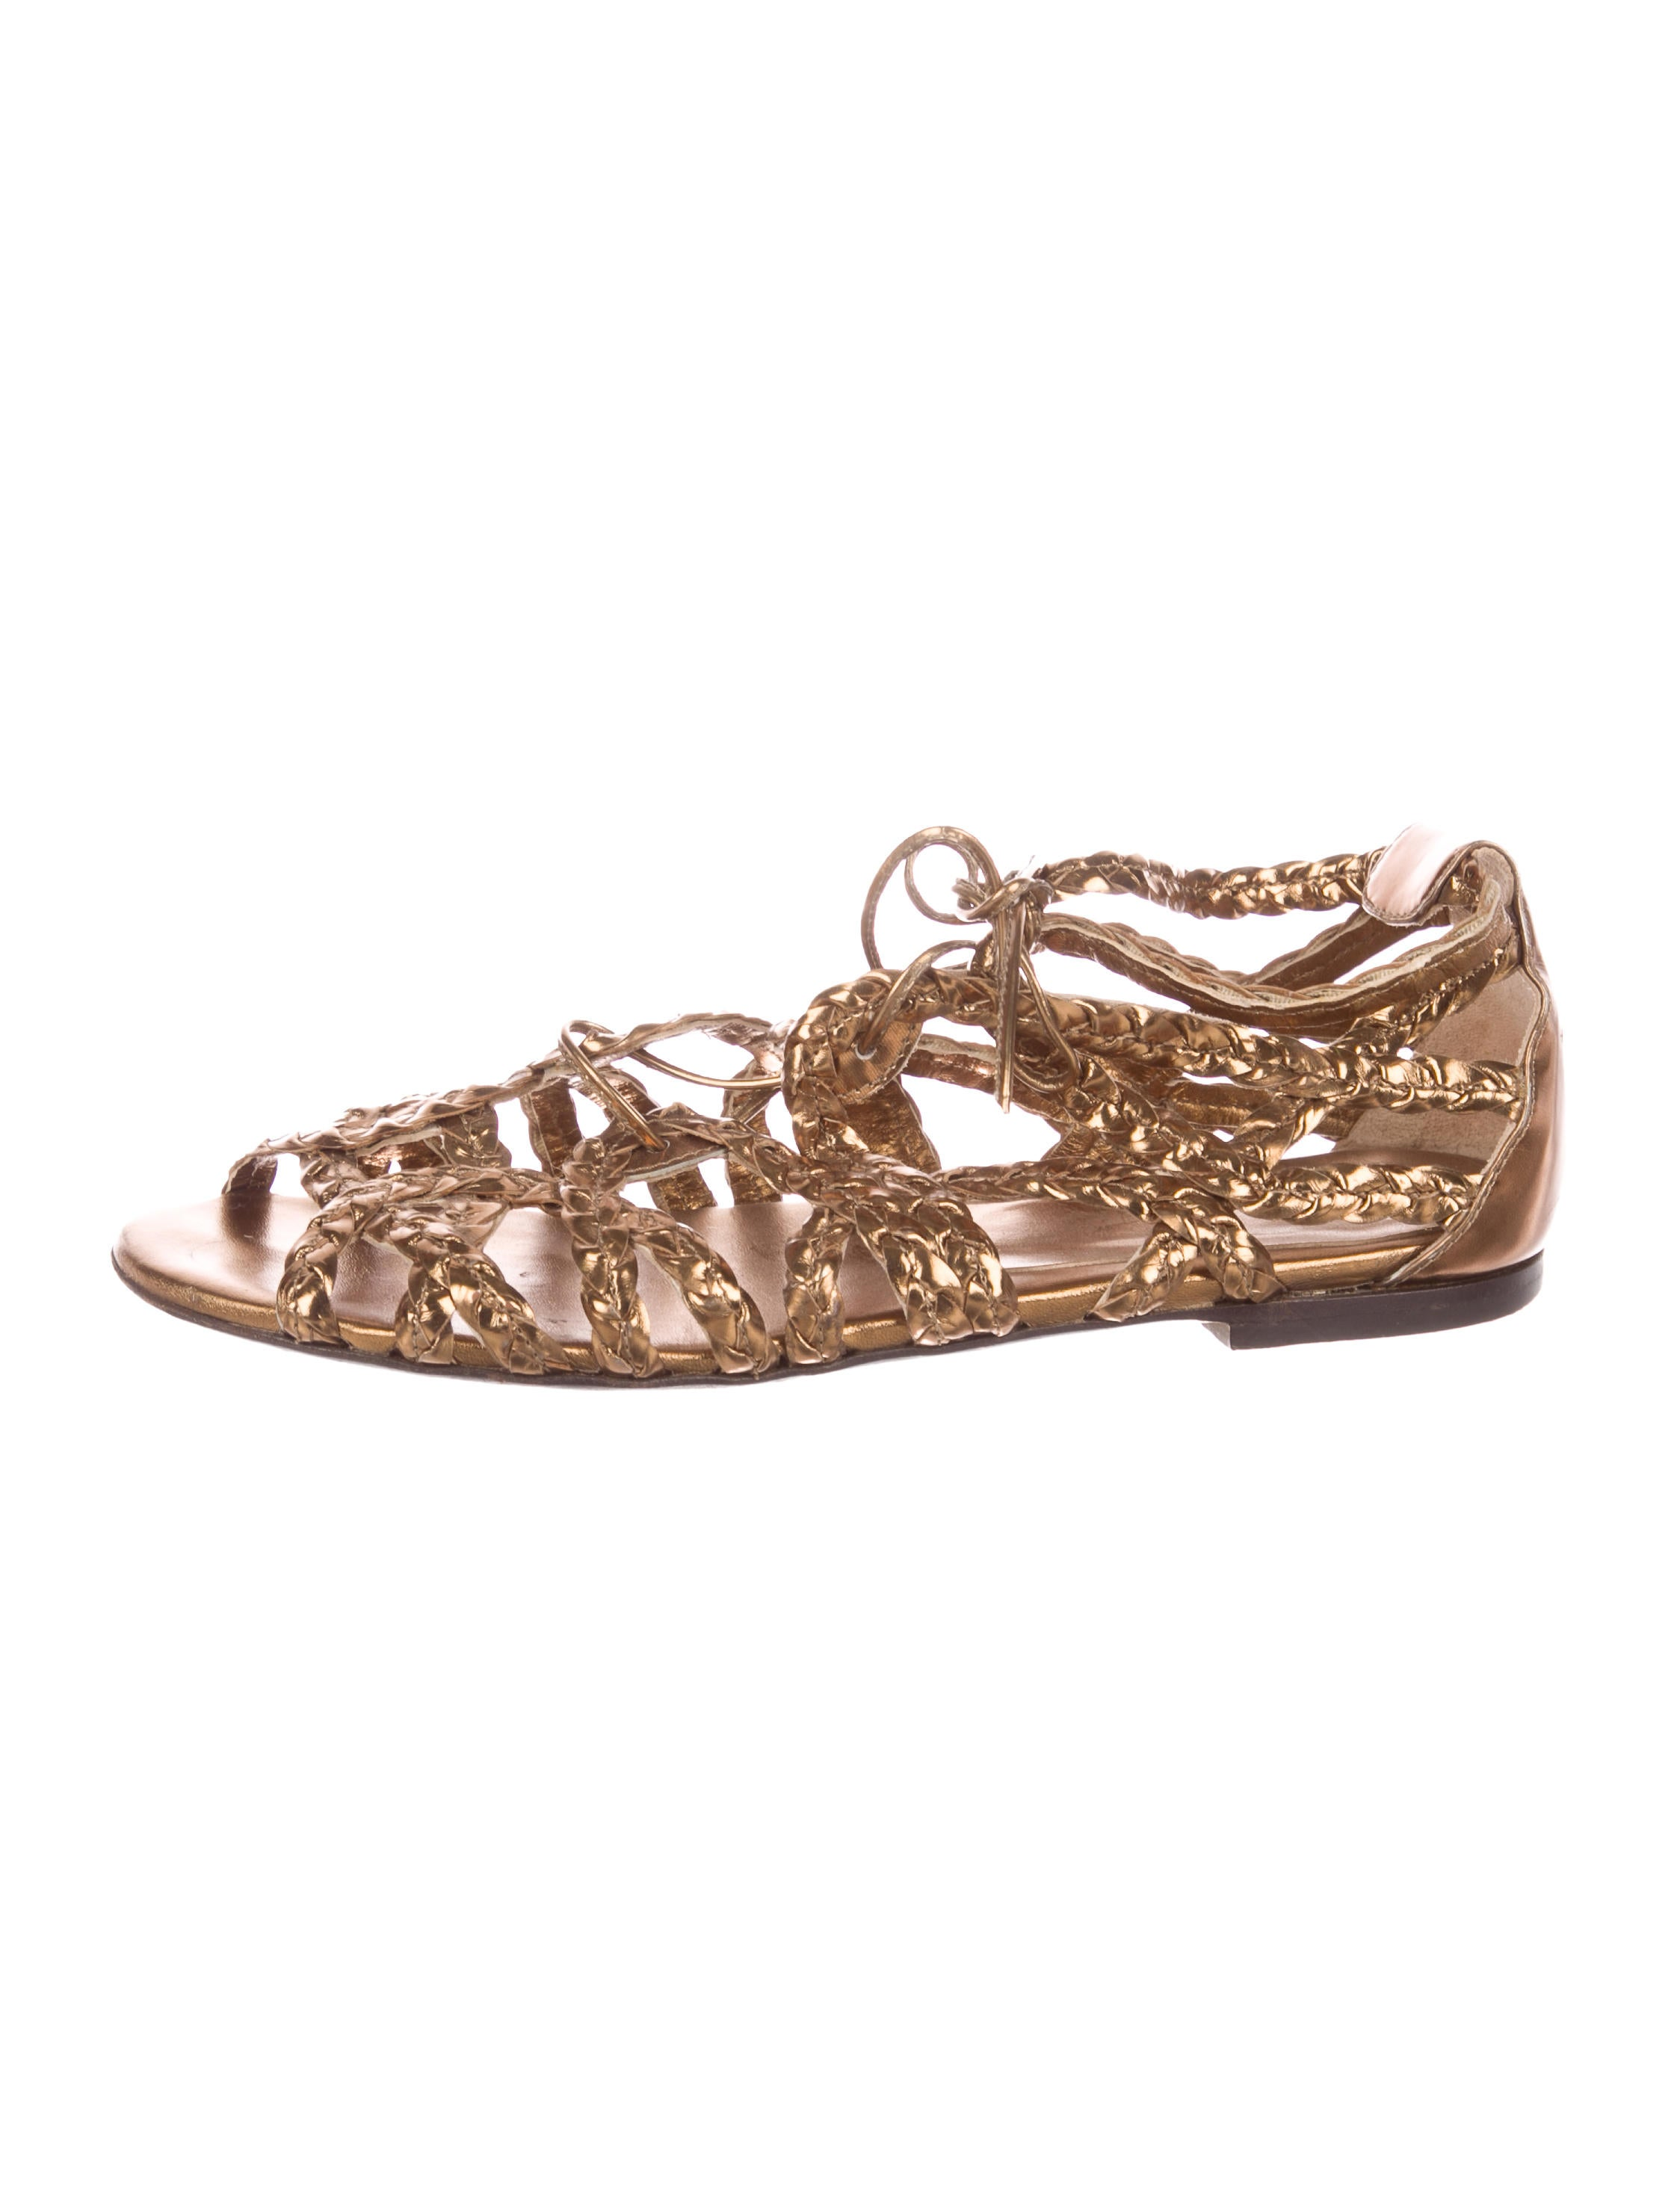 Jil Sander Braided Caged Sandals recommend online clearance marketable outlet amazing price discount sast supply AdppUy